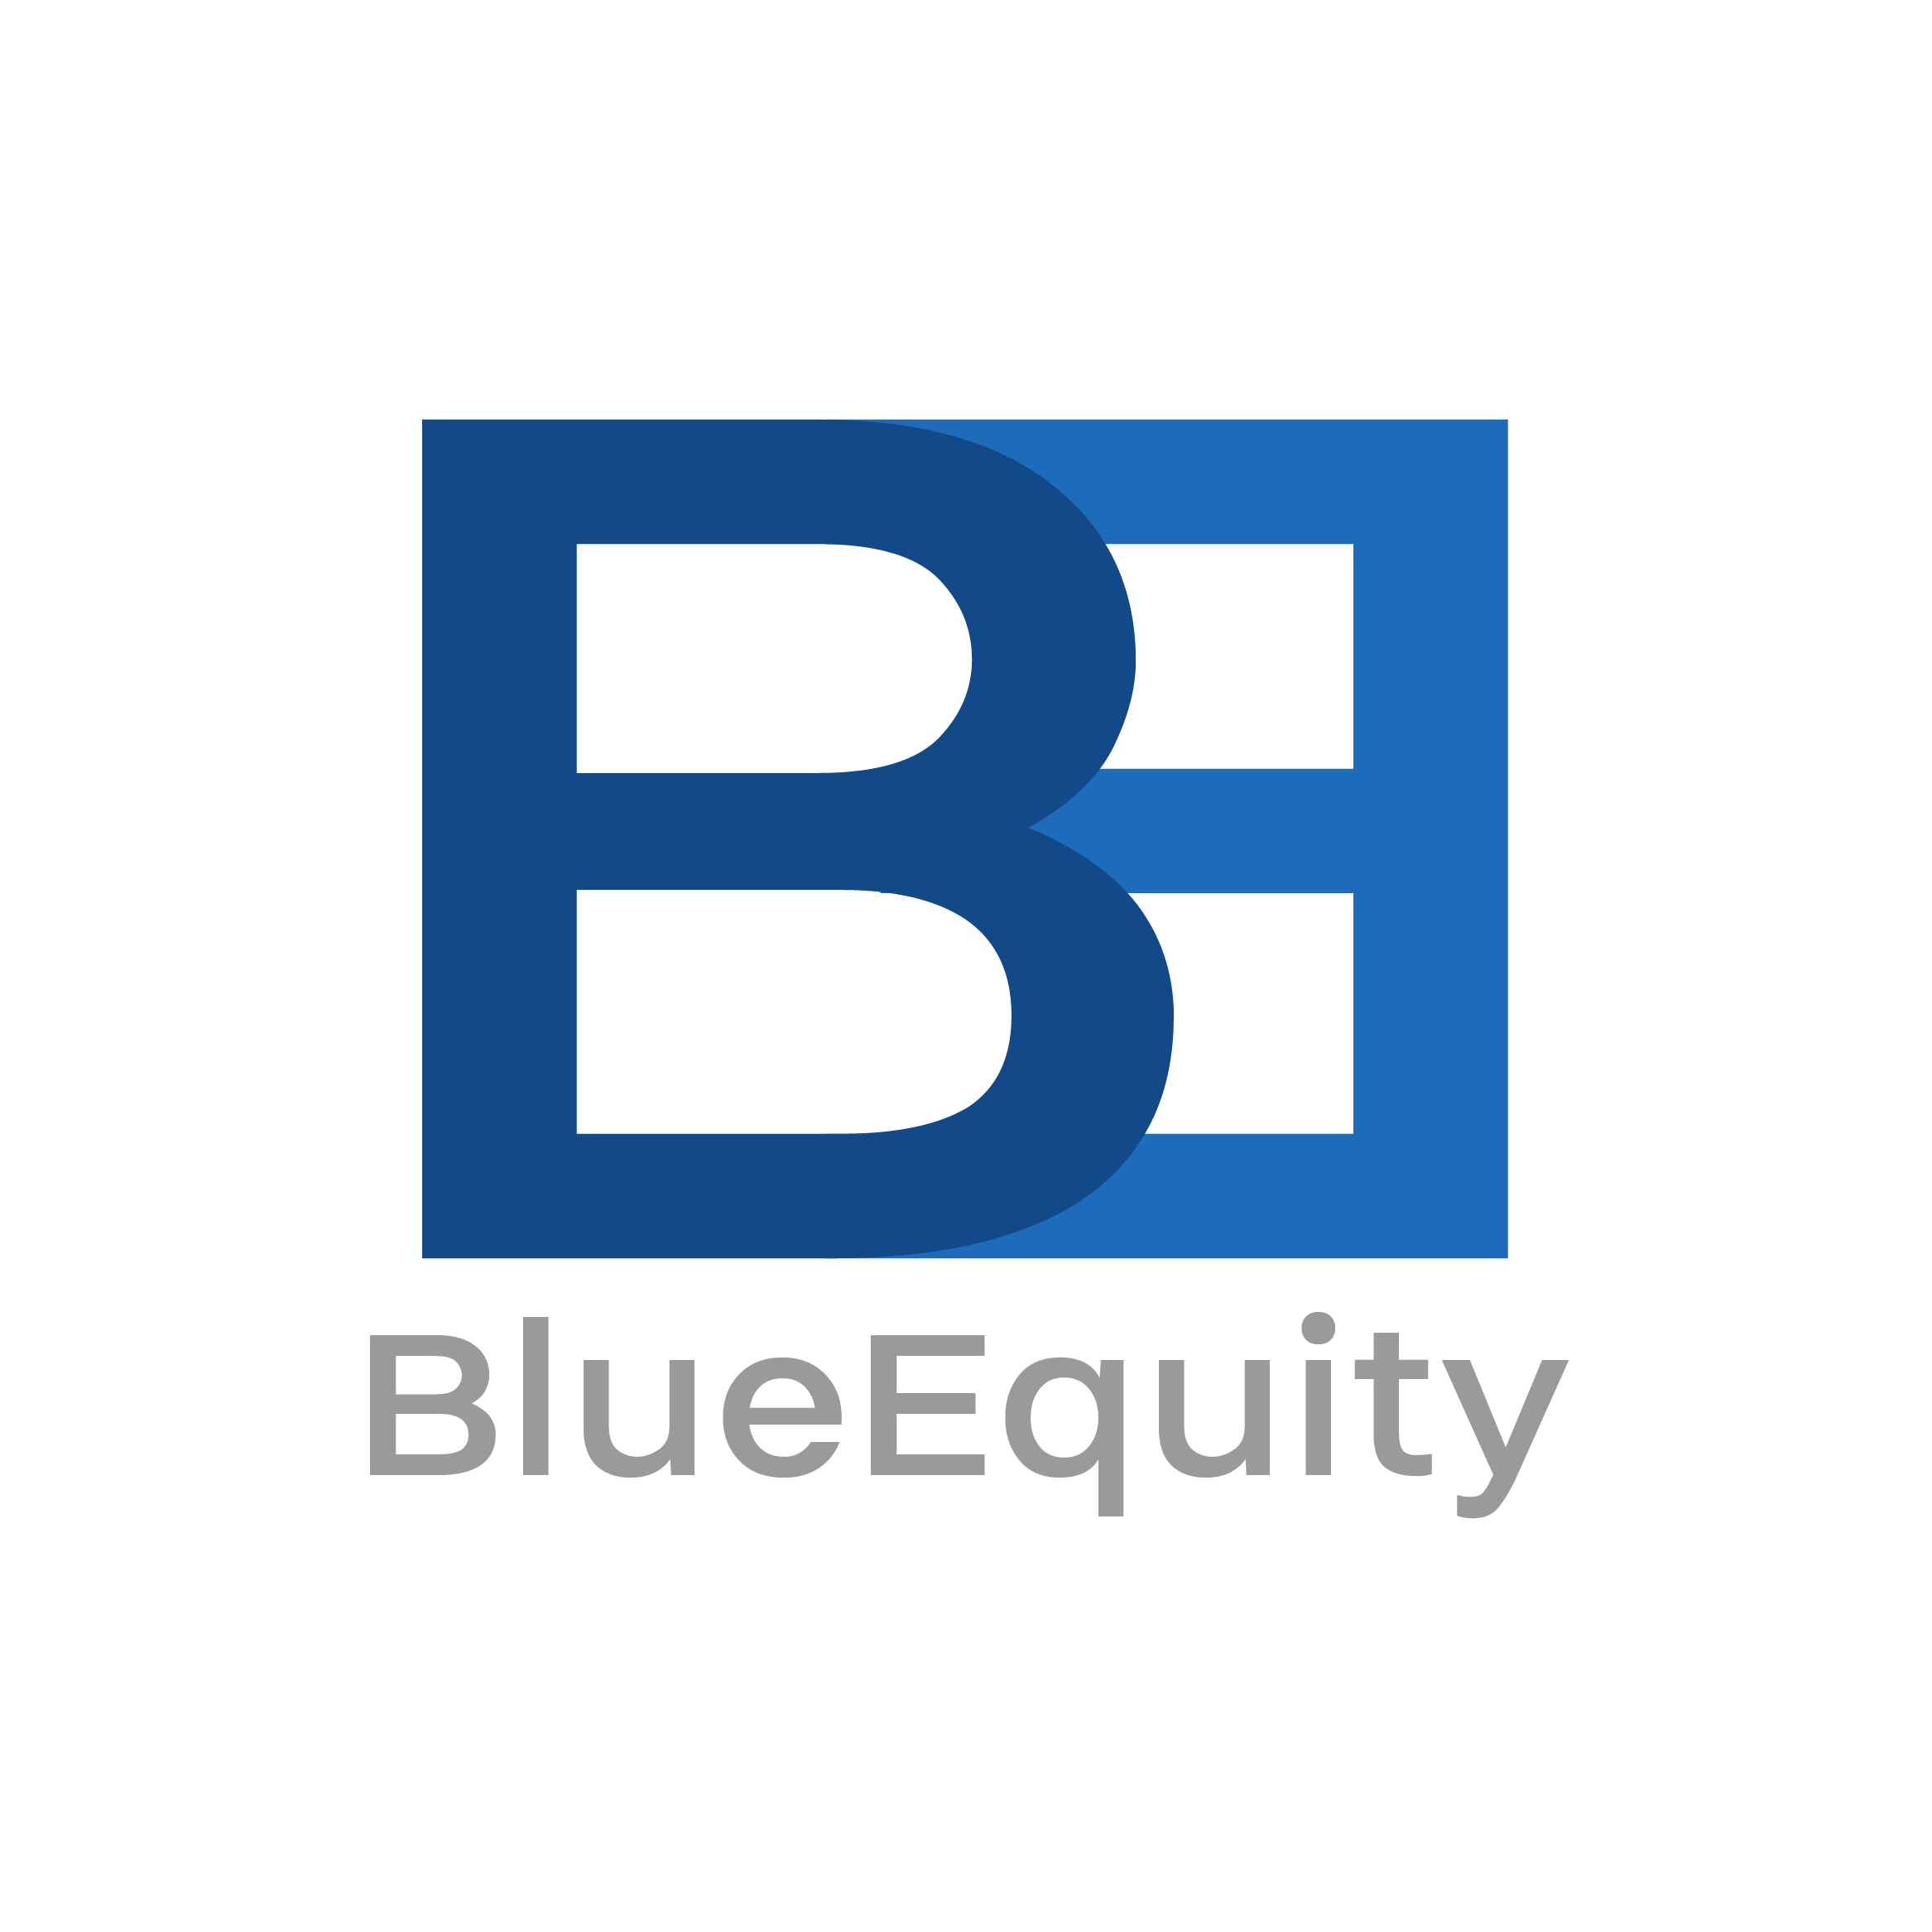 BlueEquity_v4.png